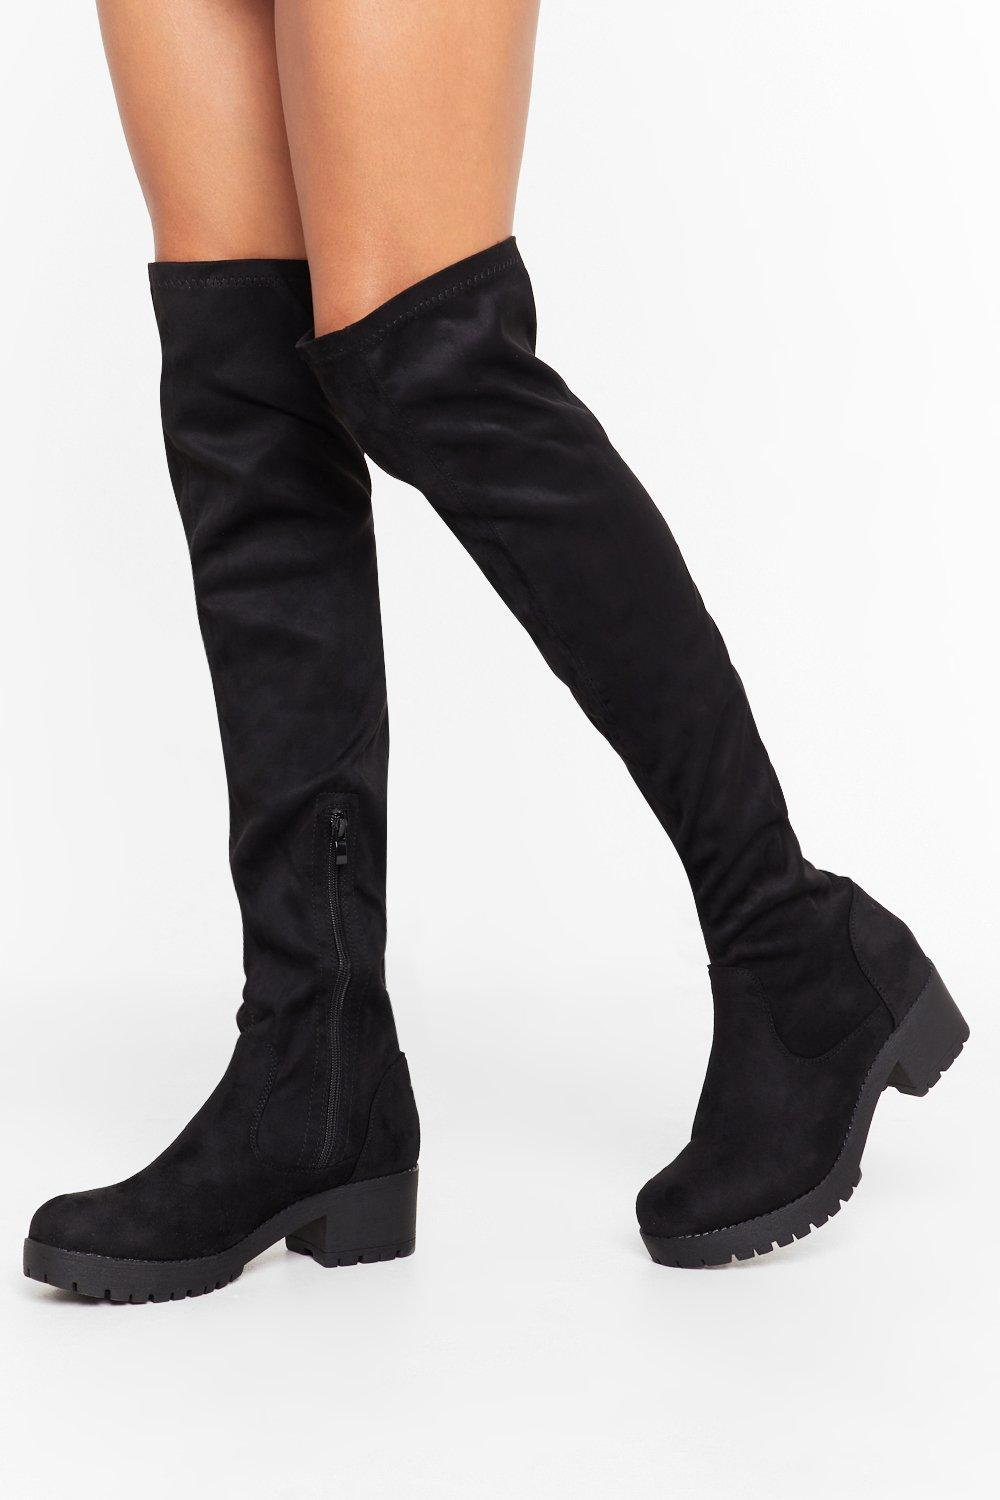 Image of Tell Me When It's Over-the-Knee Faux Suede Boots